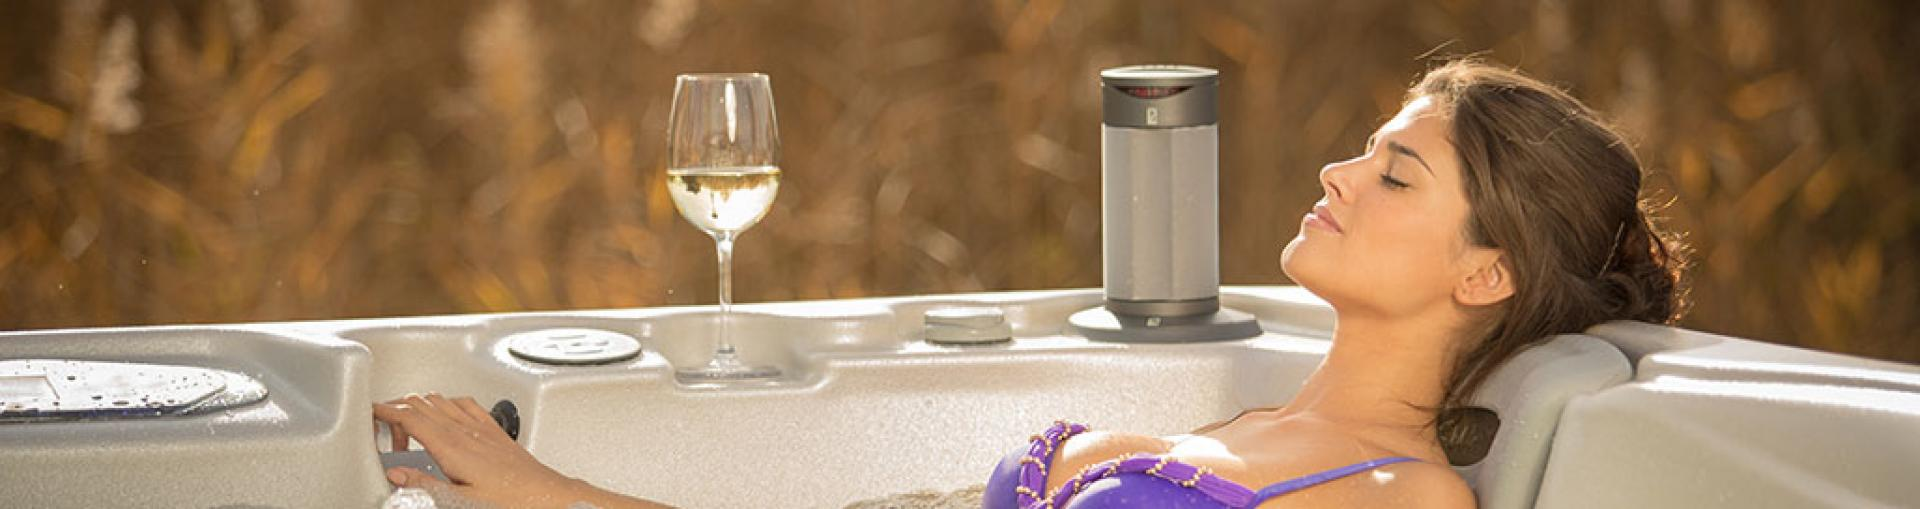 Wellis Hot tubs in Devon and Cornwall